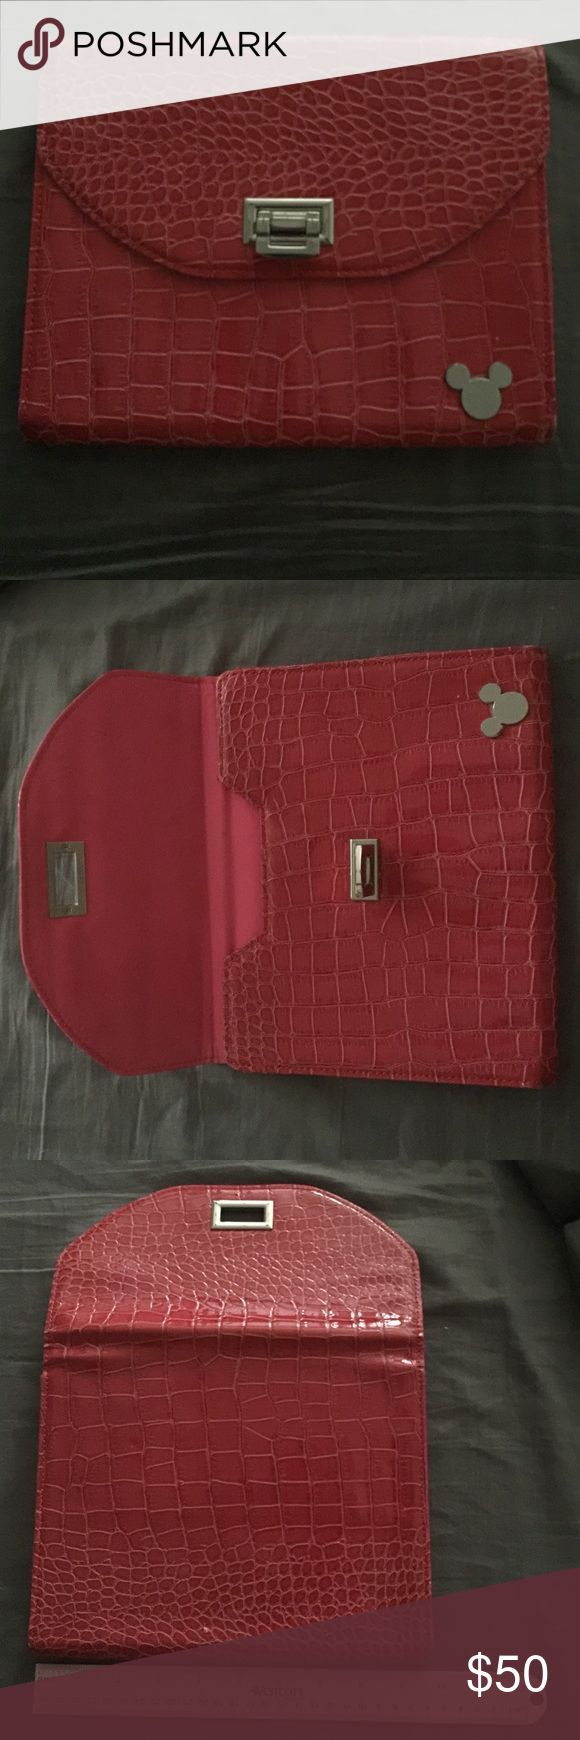 Disney - Large IPad cover with Mickey Mouse Emblem DISNEY IPad cover. Pink in color with Mickey Mouse Emblem. Like new. No dust bag. 9 3/4 inches long 8 inches high. Pink with silver hardware. Like new!!! Disney Accessories Tablet Cases